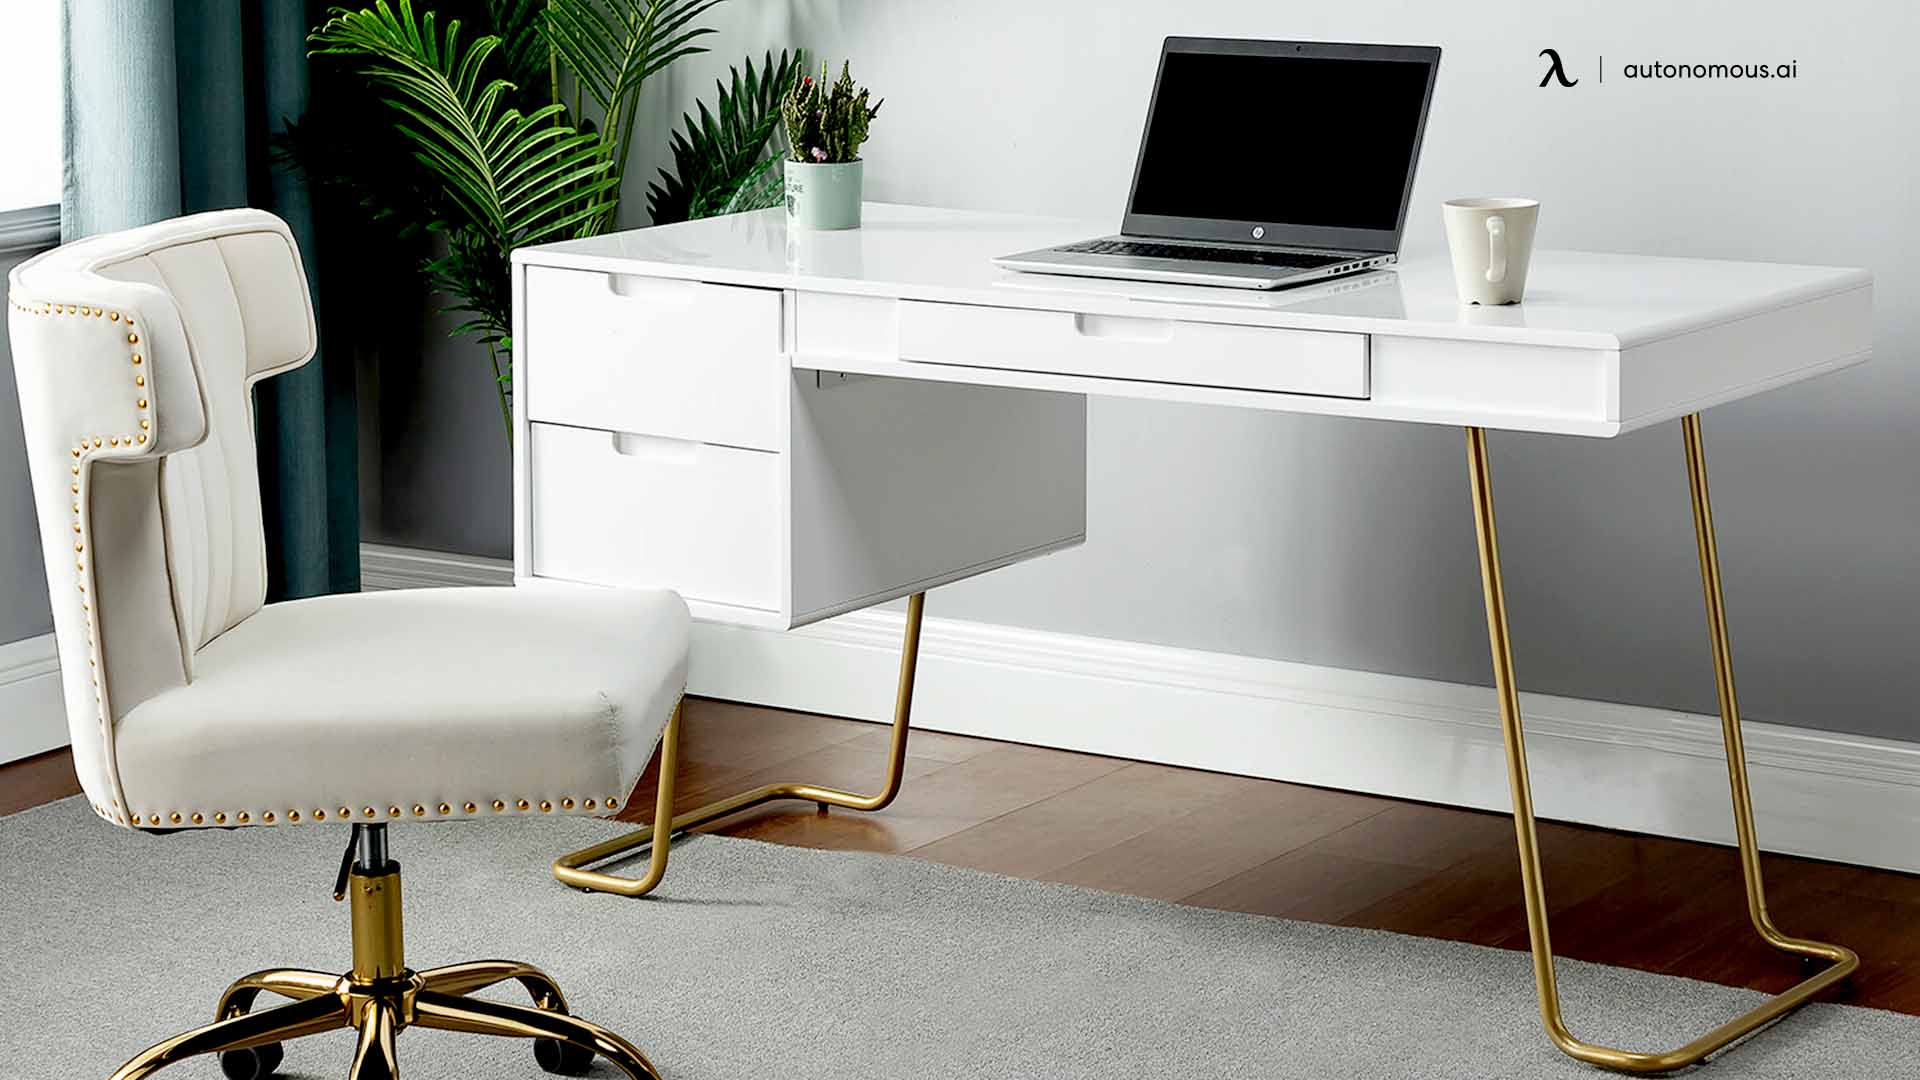 Everly Queen's Ogara Desk and Chair Set